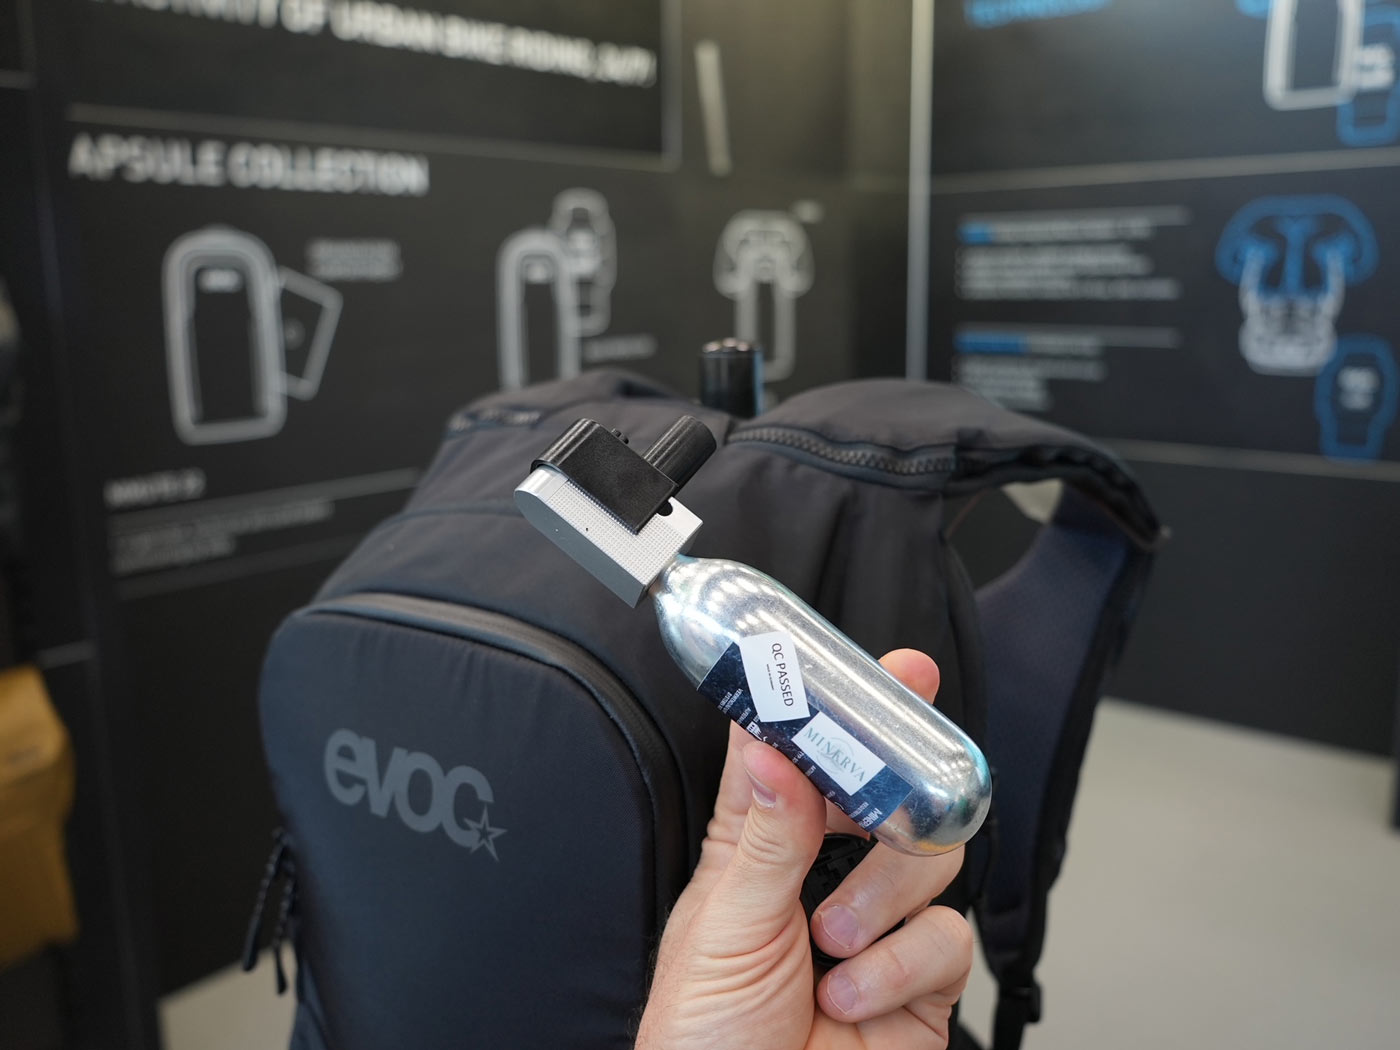 evoc commute air pro pack gas canister inflator